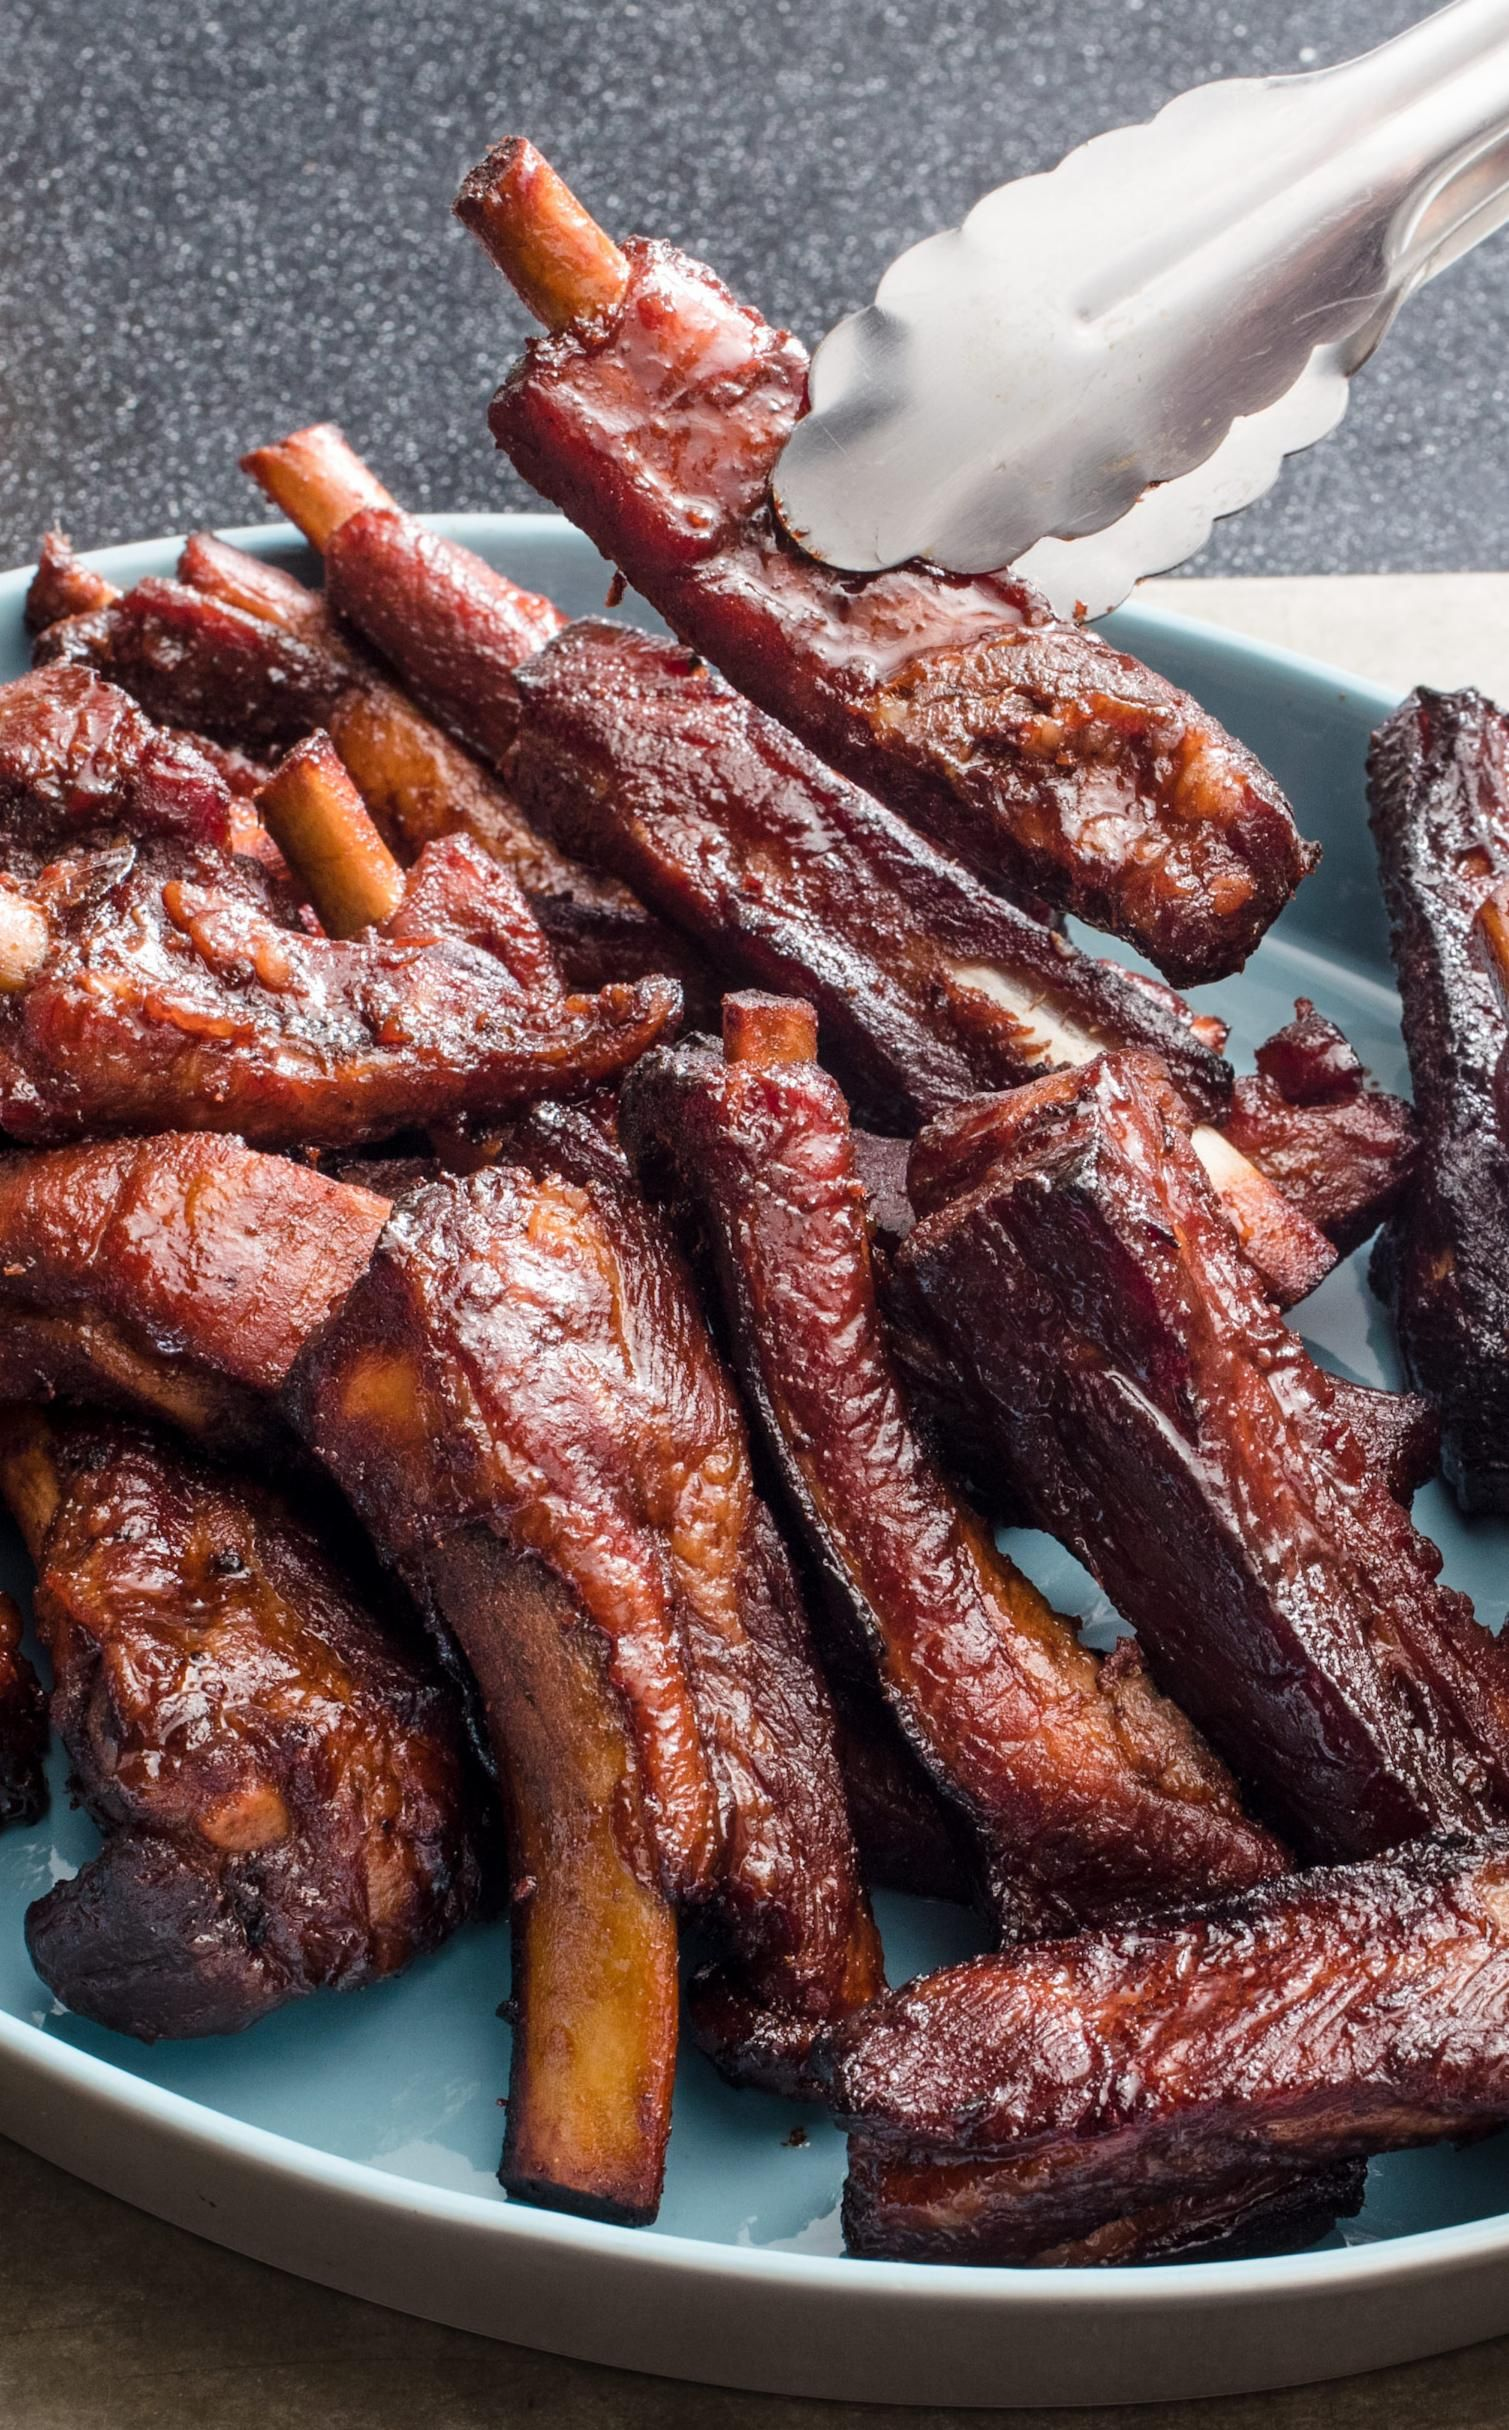 Chinese Barbecued Spareribs Some Barbecued Ribs Require You To